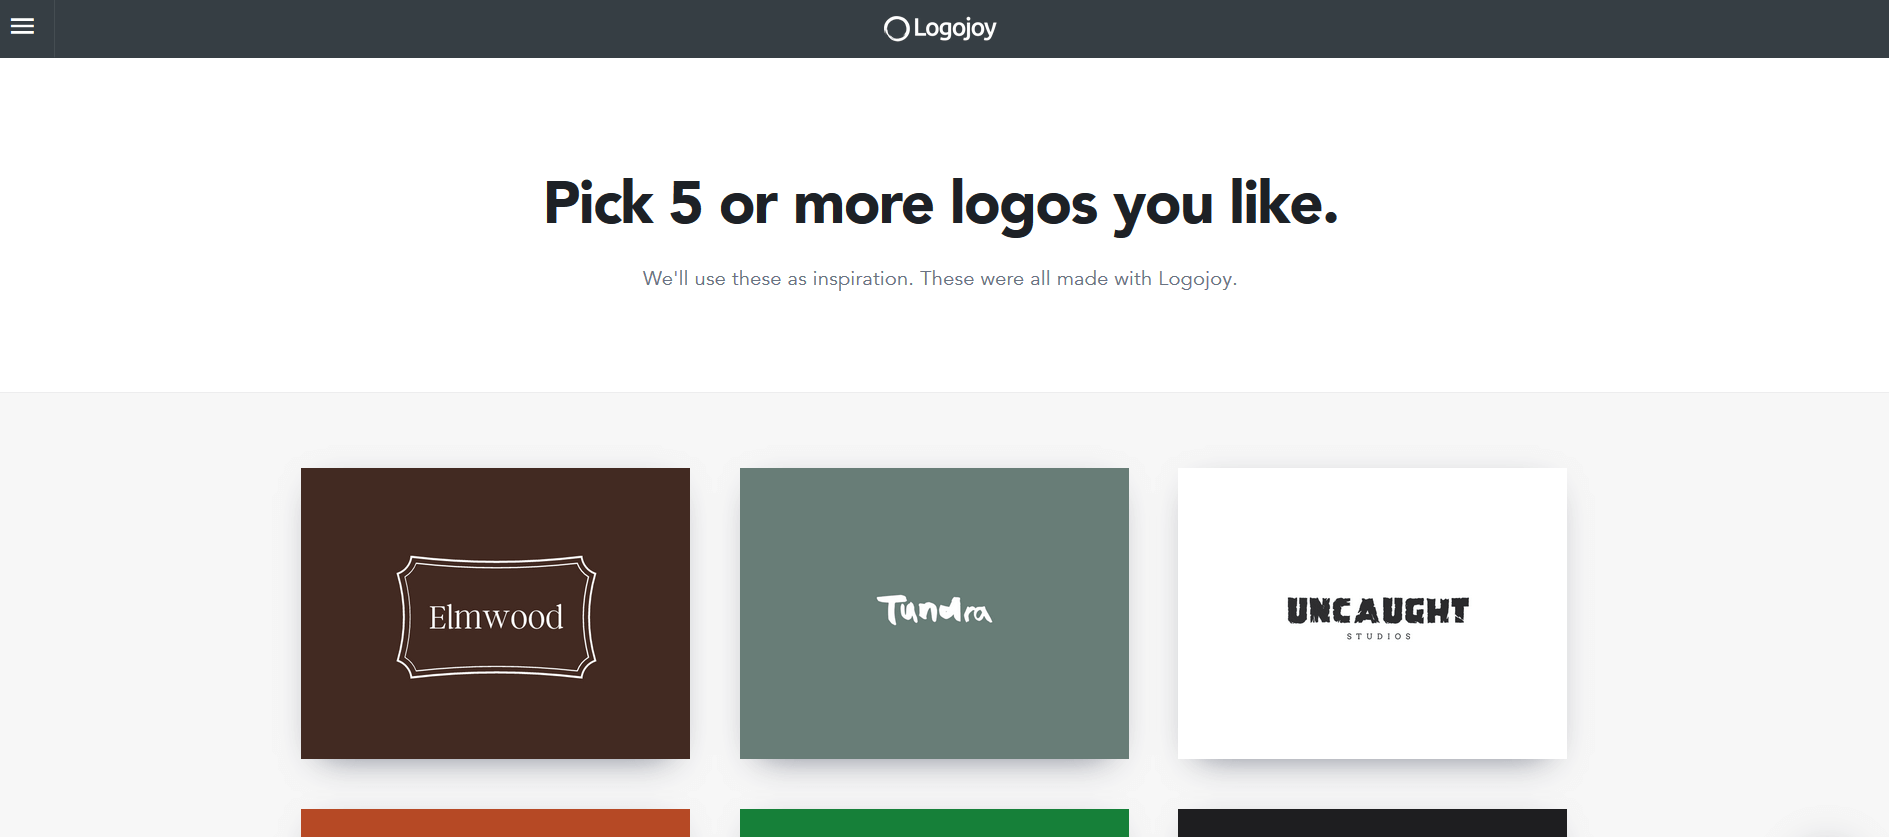 LogoJoy is a tool that can be used to create your business logo.